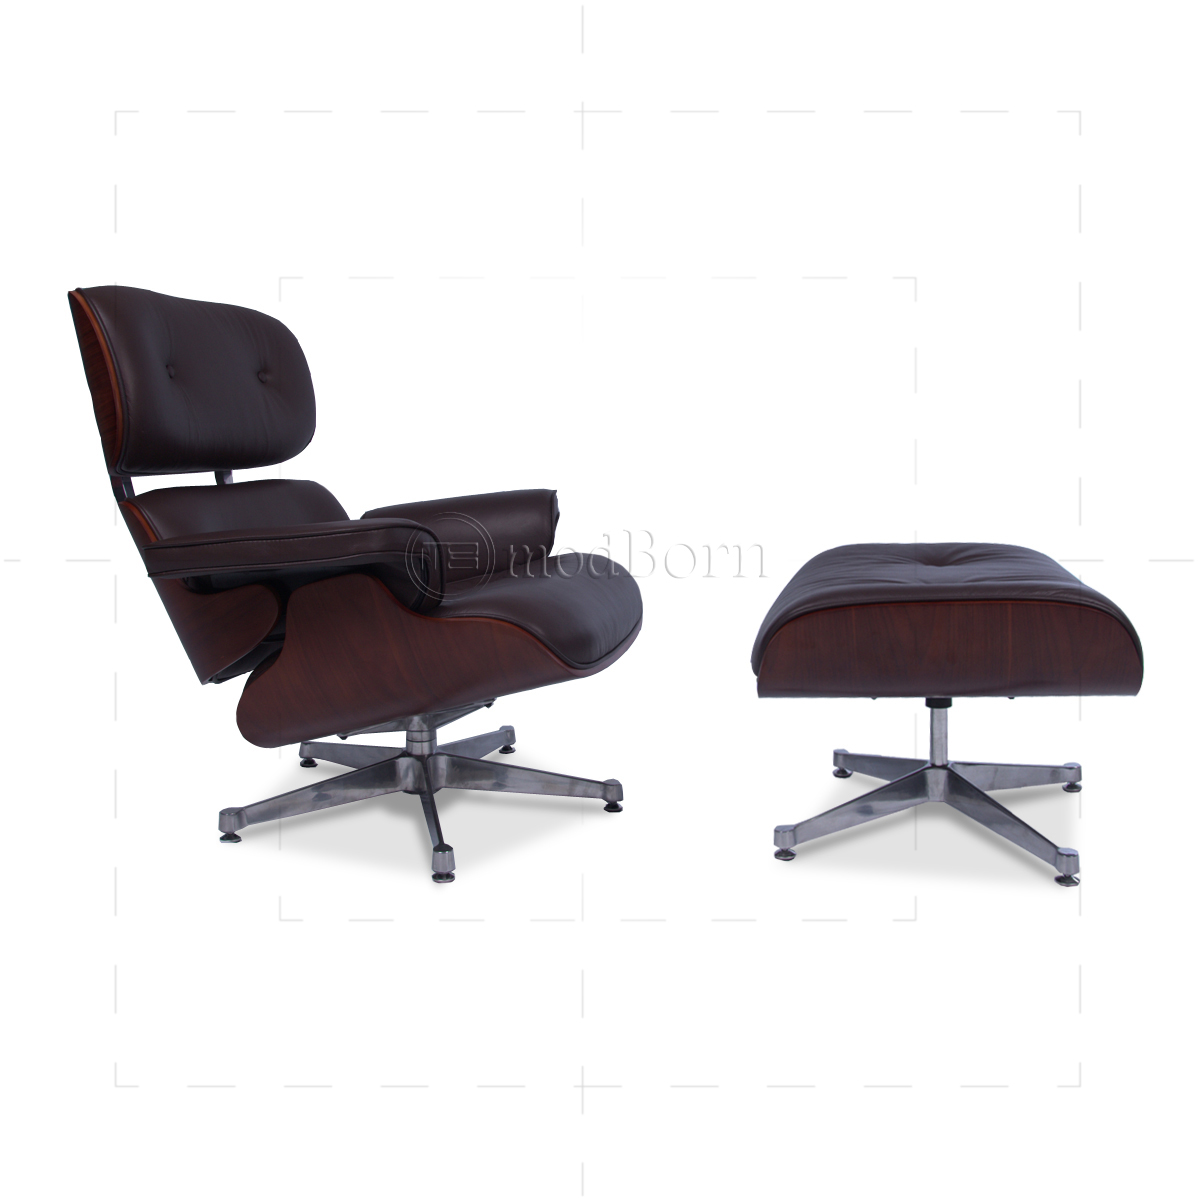 eames style lounge chair and ottoman brown leather cherry wood replica. Black Bedroom Furniture Sets. Home Design Ideas